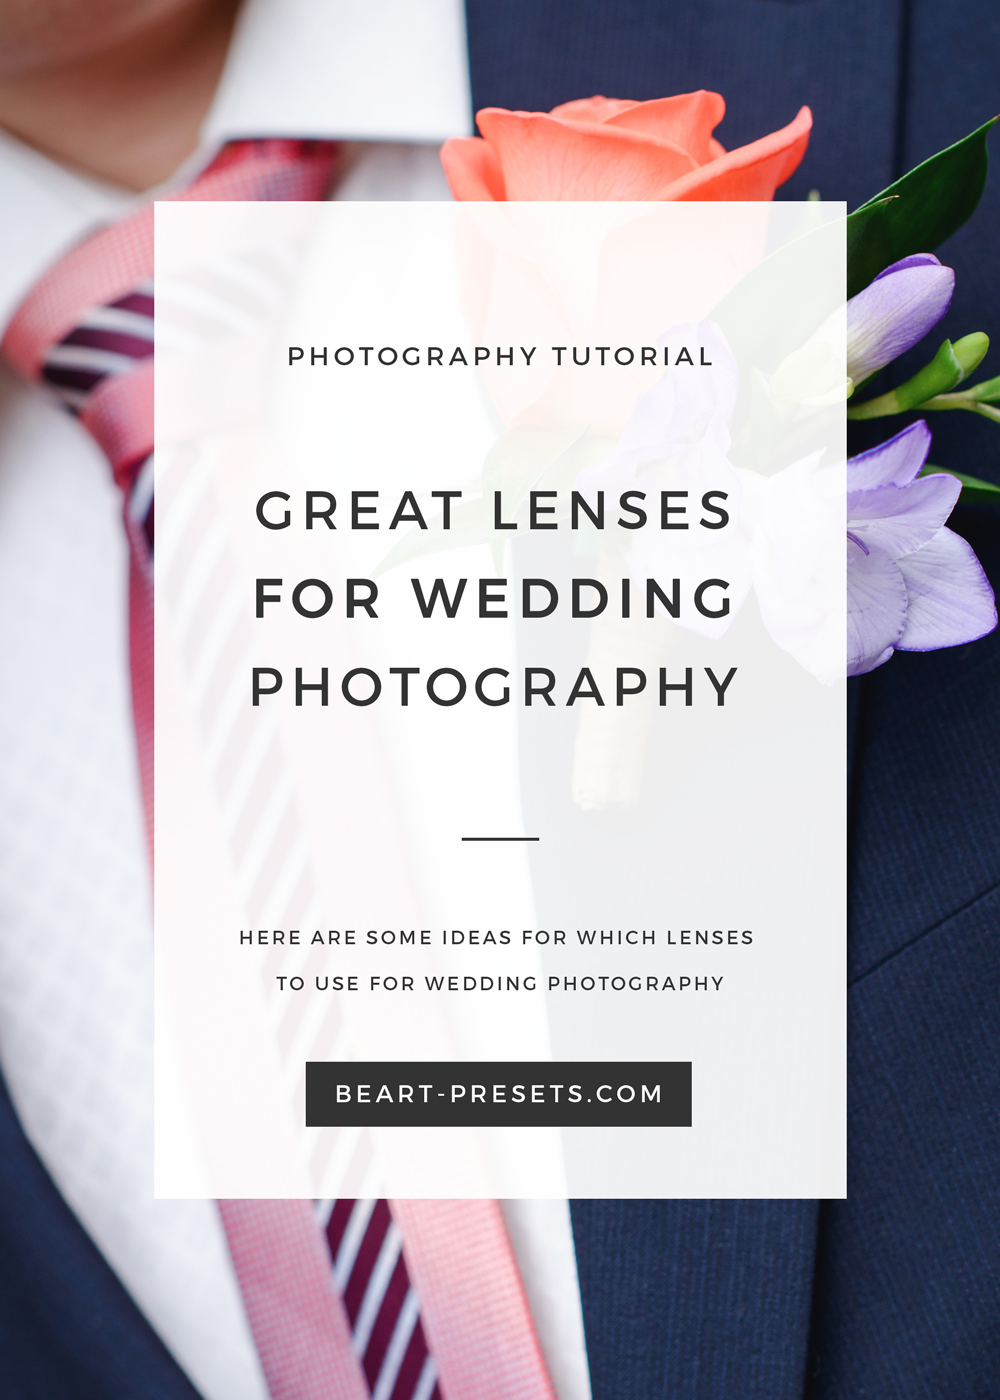 Great tips how to choose lenses for wedding photography